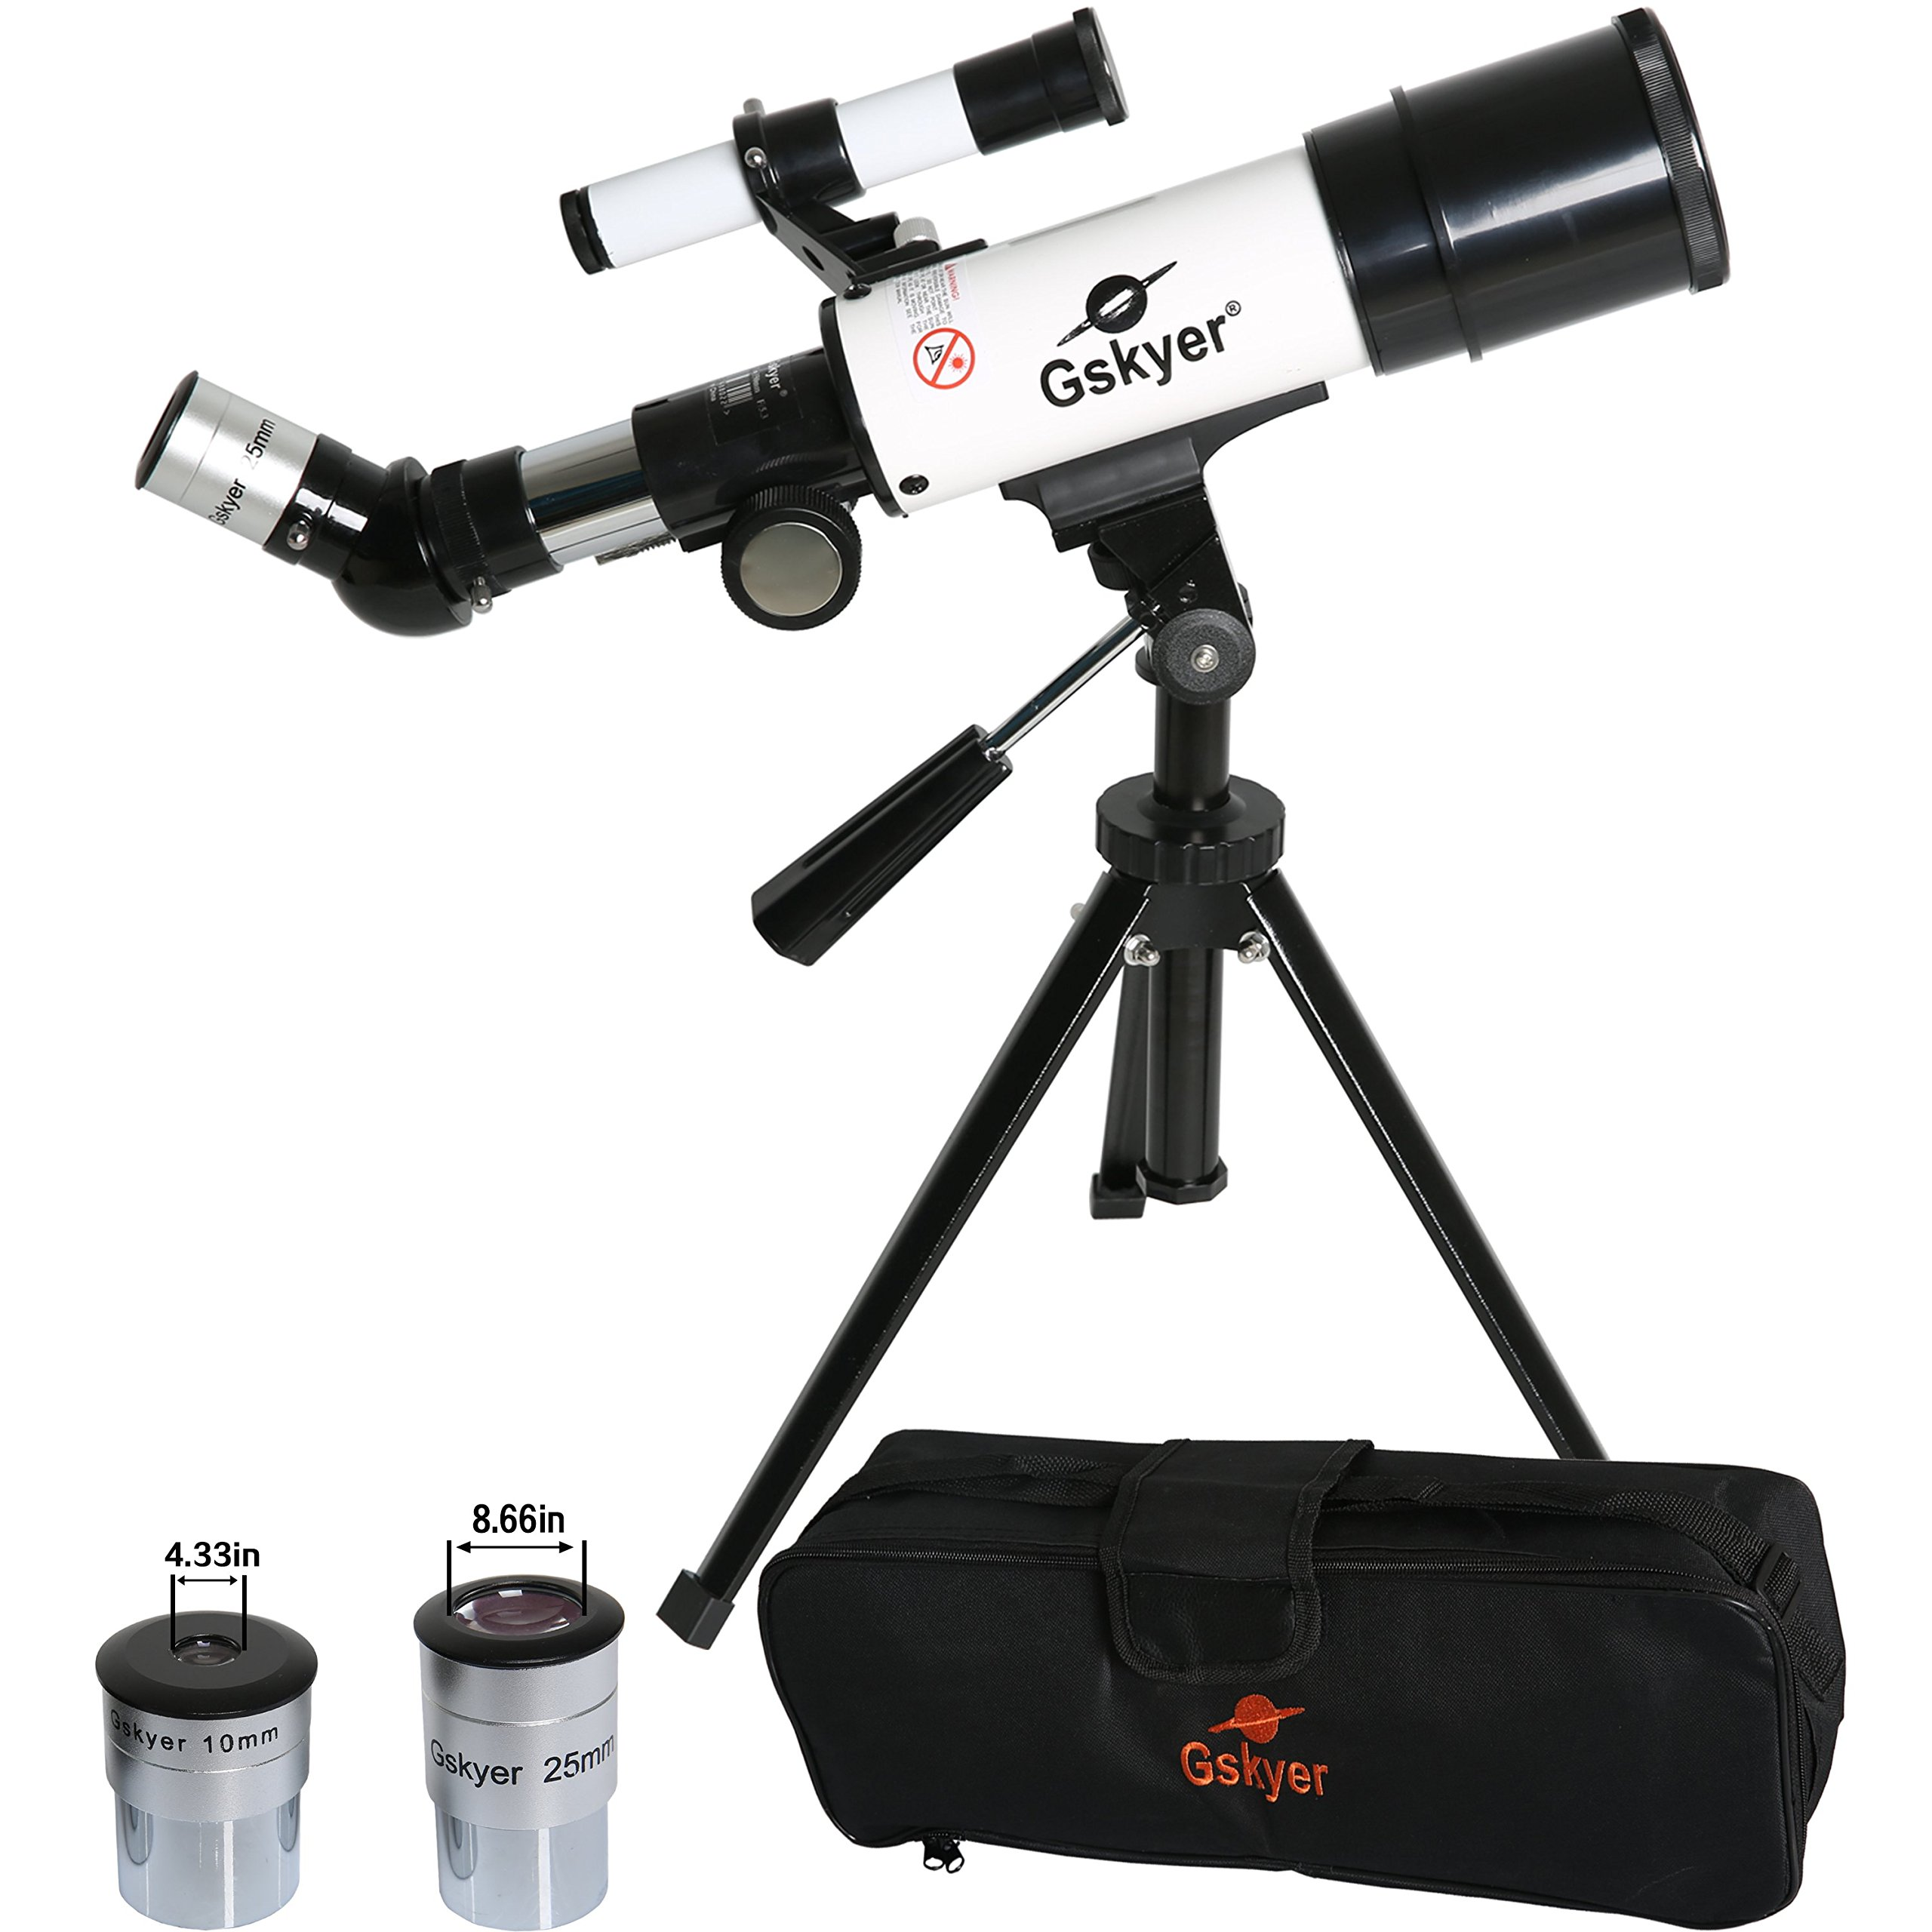 Gskyer Telescope, 60mm AZ Refractor Telescope, German Technology Travel Scope by Gskyer